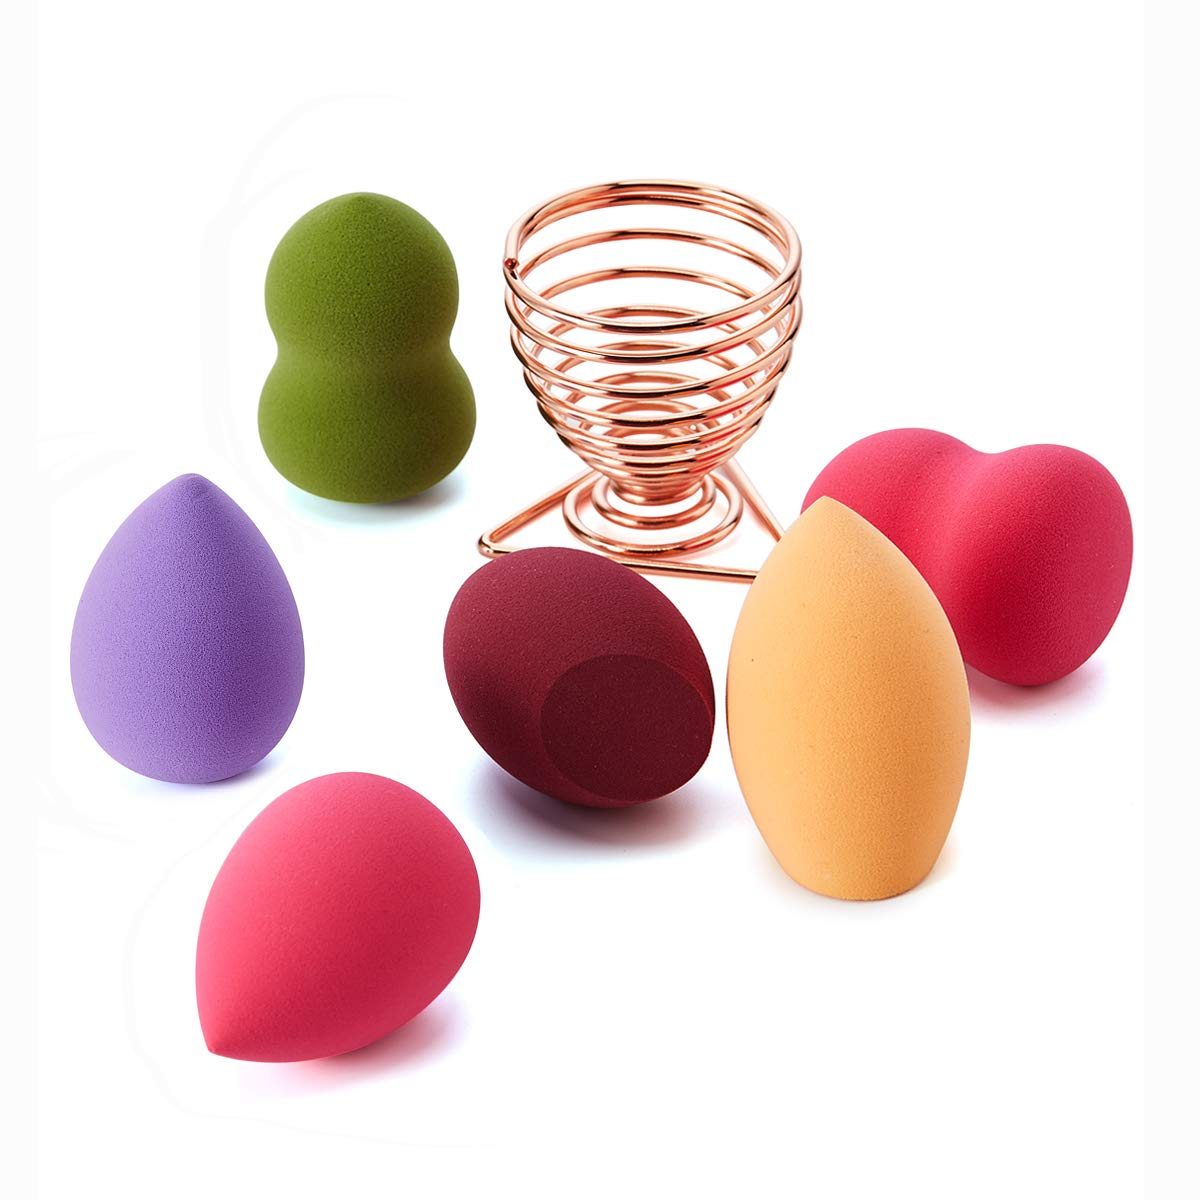 [No Latex]SOMIER 6pcs Beauty Sponge Makeup Blender Set, Cosmetics Foundation Blending Sponge with Rose Gold Drying Holder